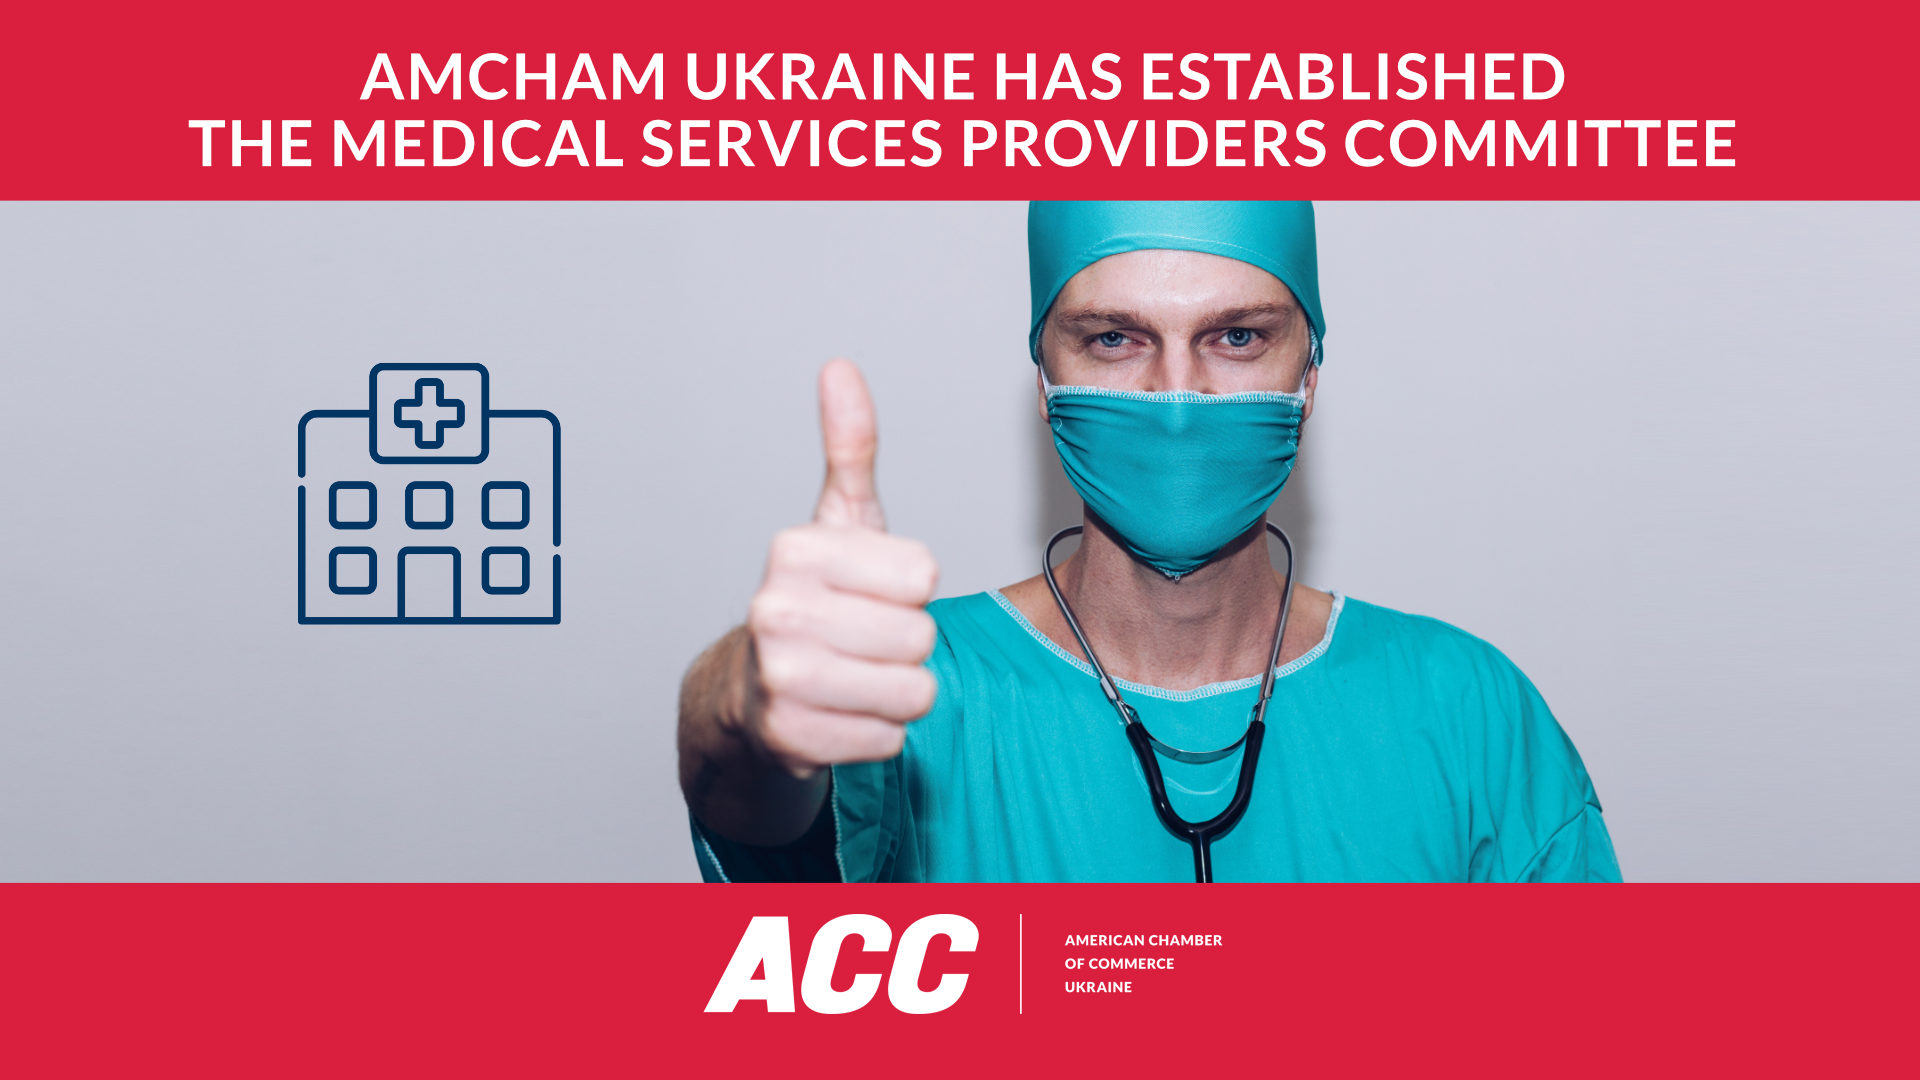 AmCham Ukraine Has Established the Medical Services Providers Committee